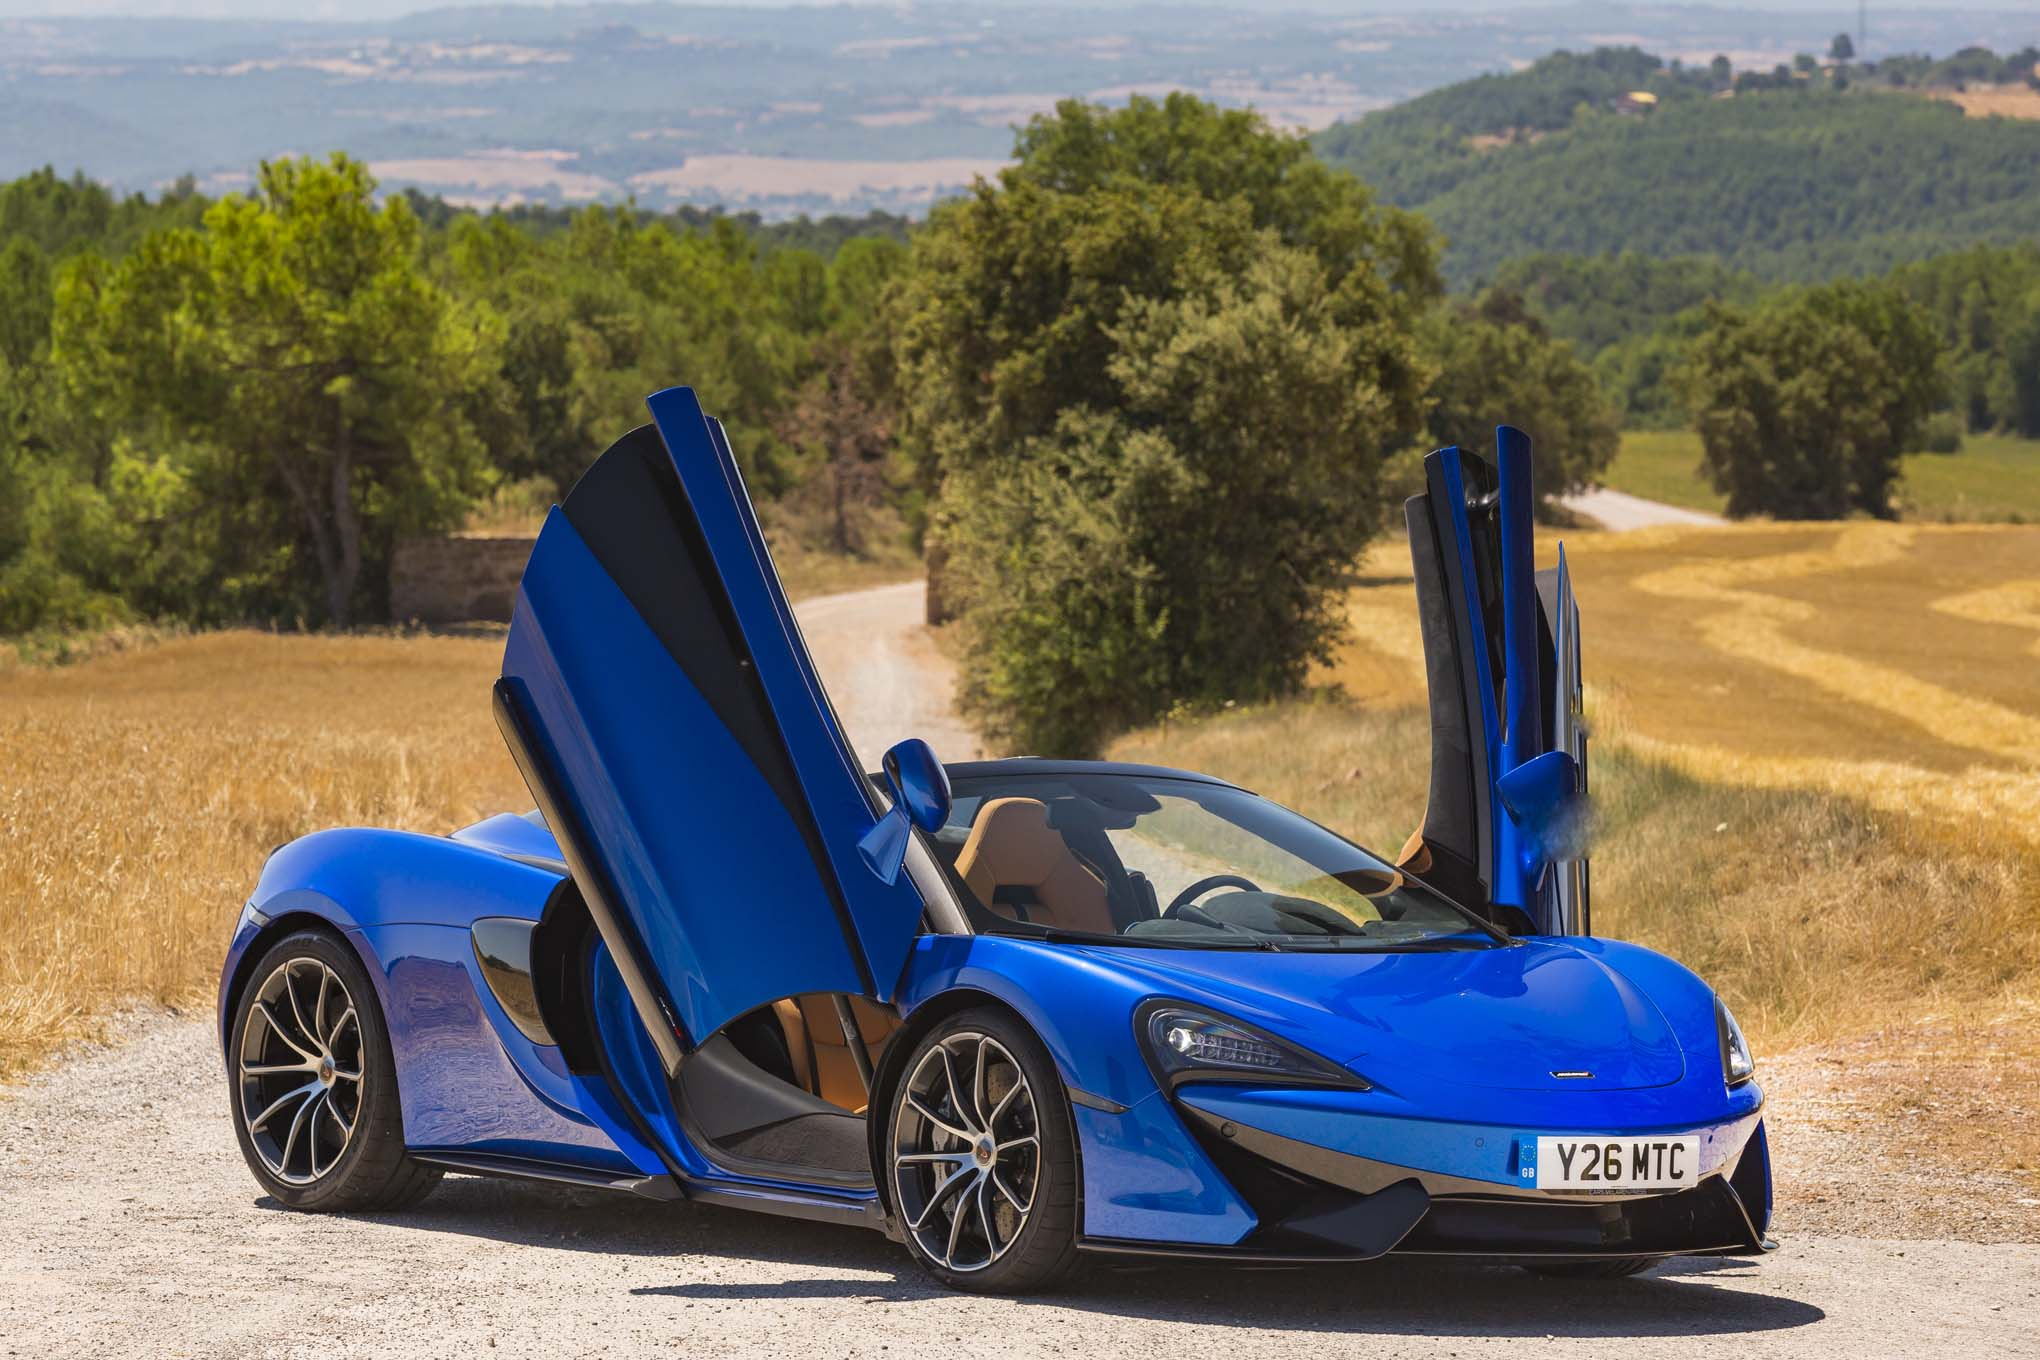 2018 mclaren 570s spider first drive review | automobile magazine